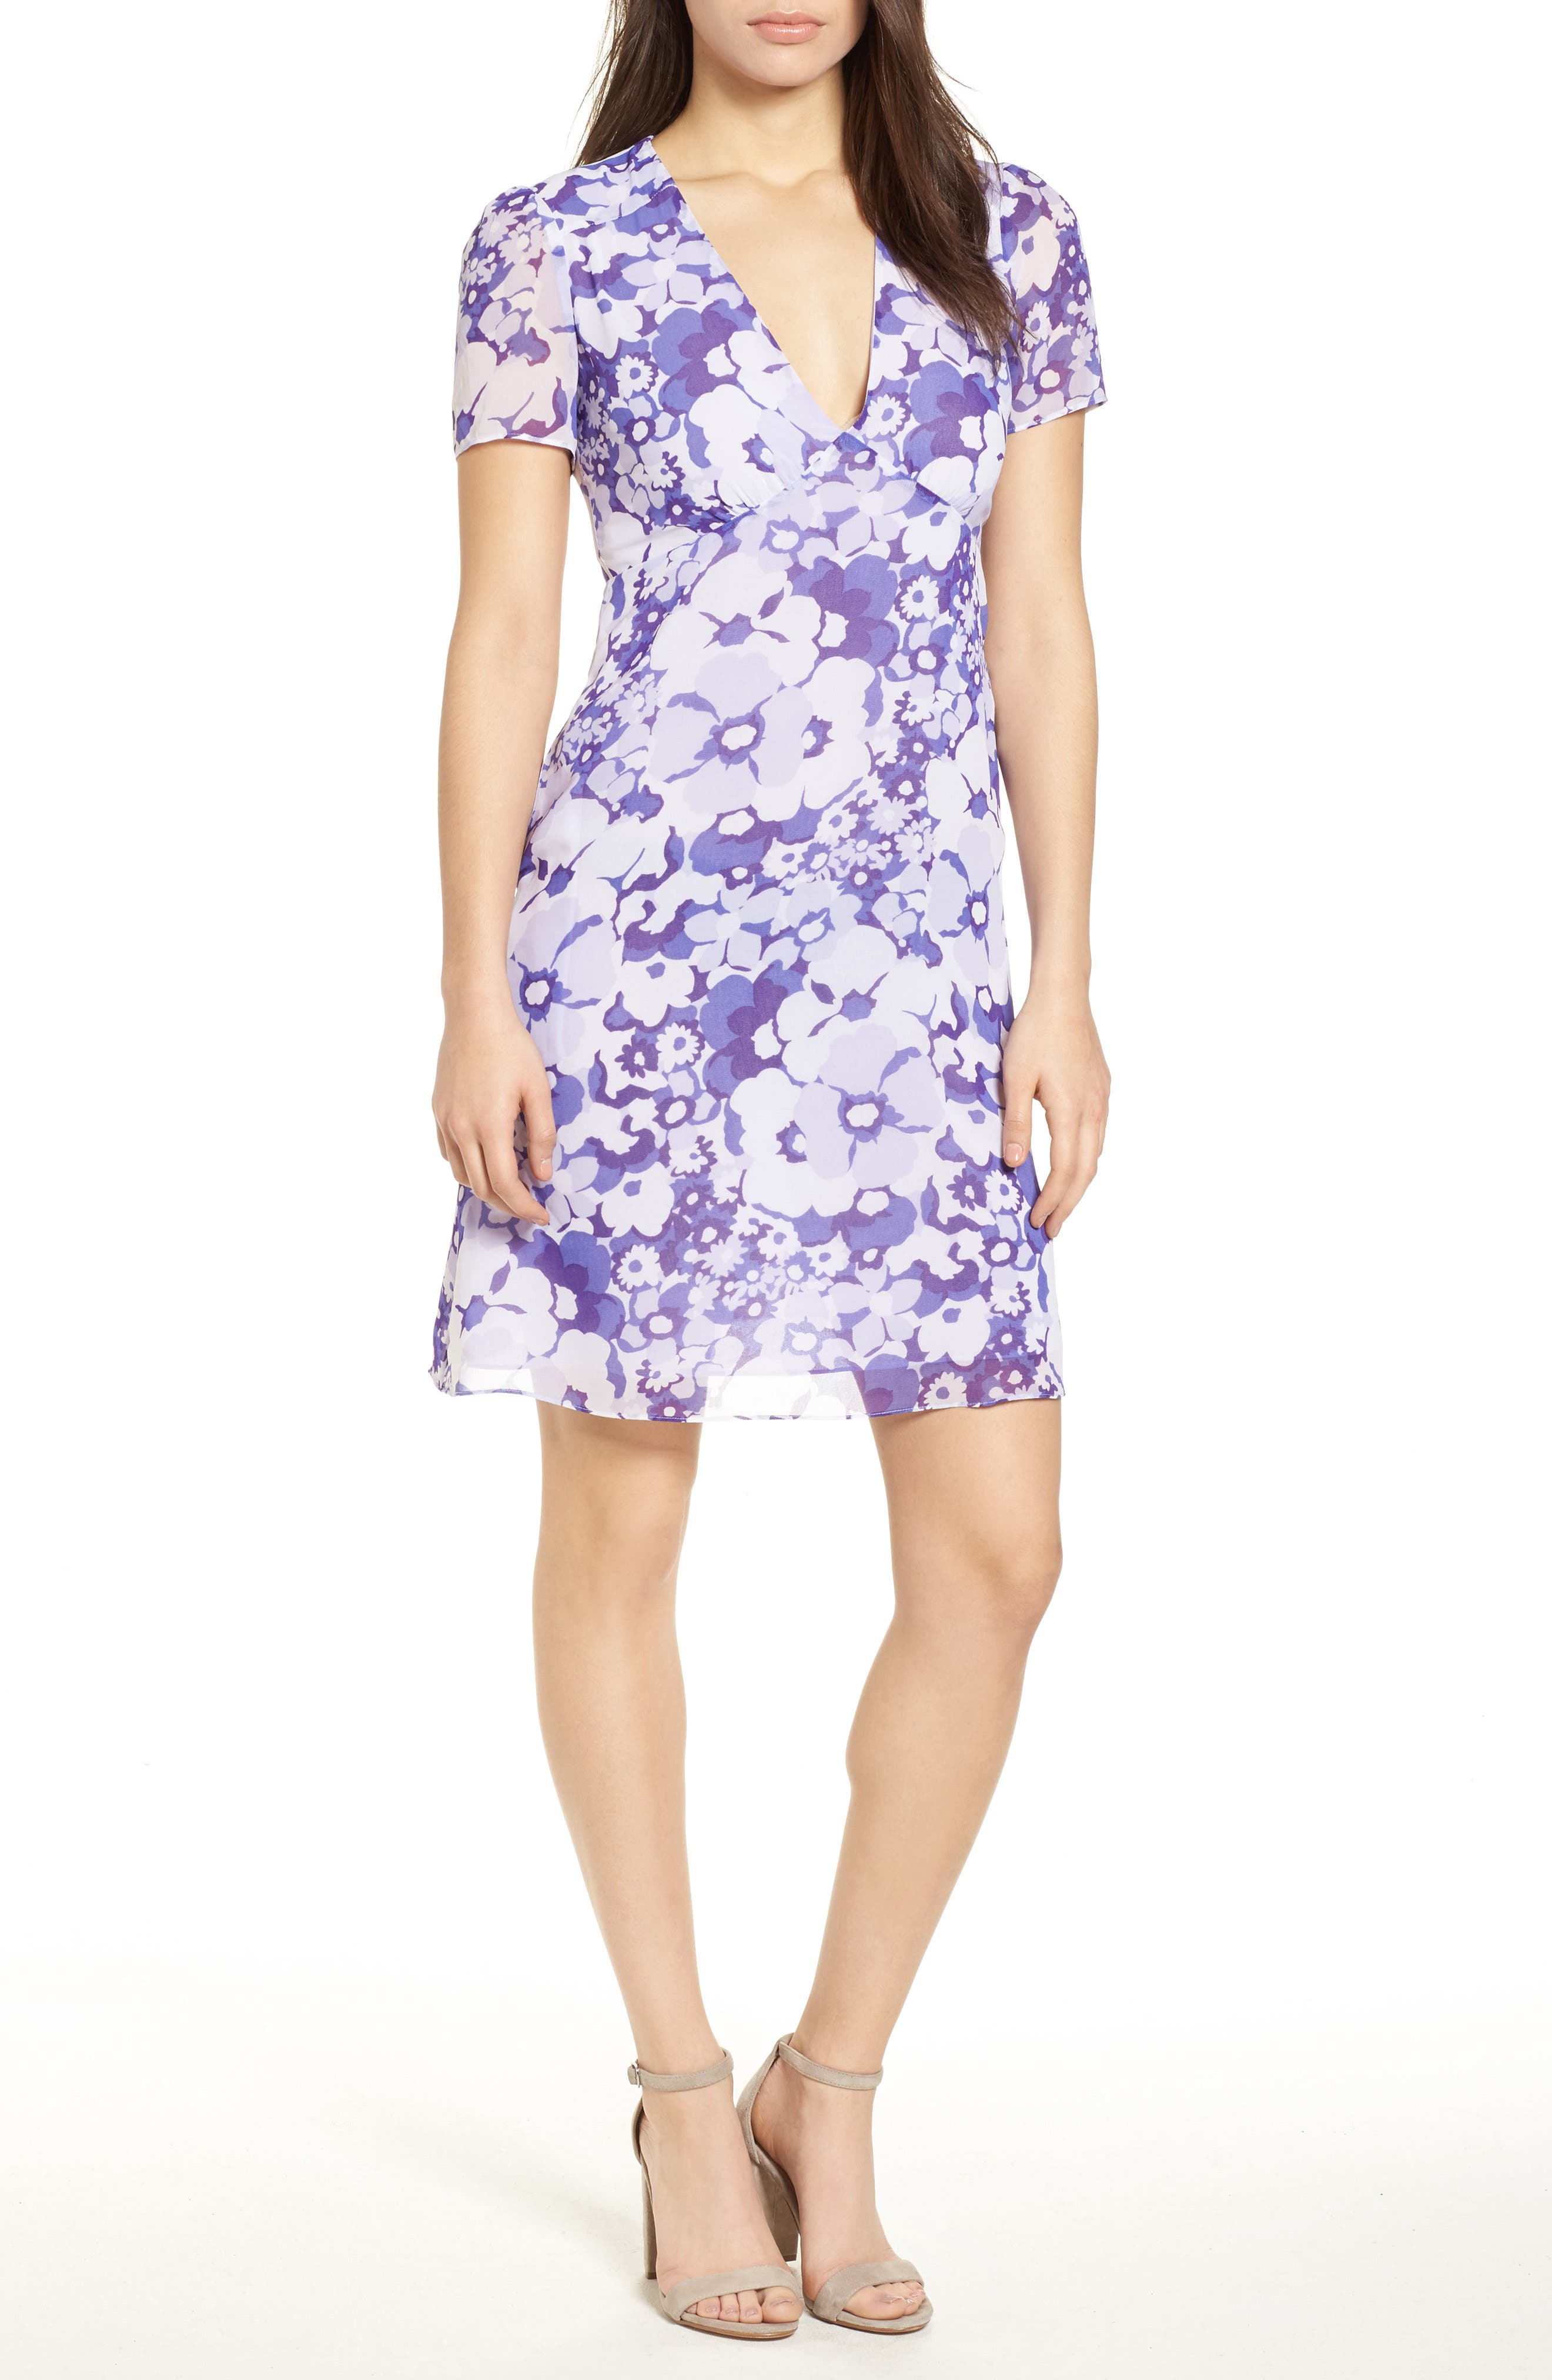 Springtime Floral Dress,                             Main thumbnail 1, color,                             Amethyst/ Light Quartz Multi